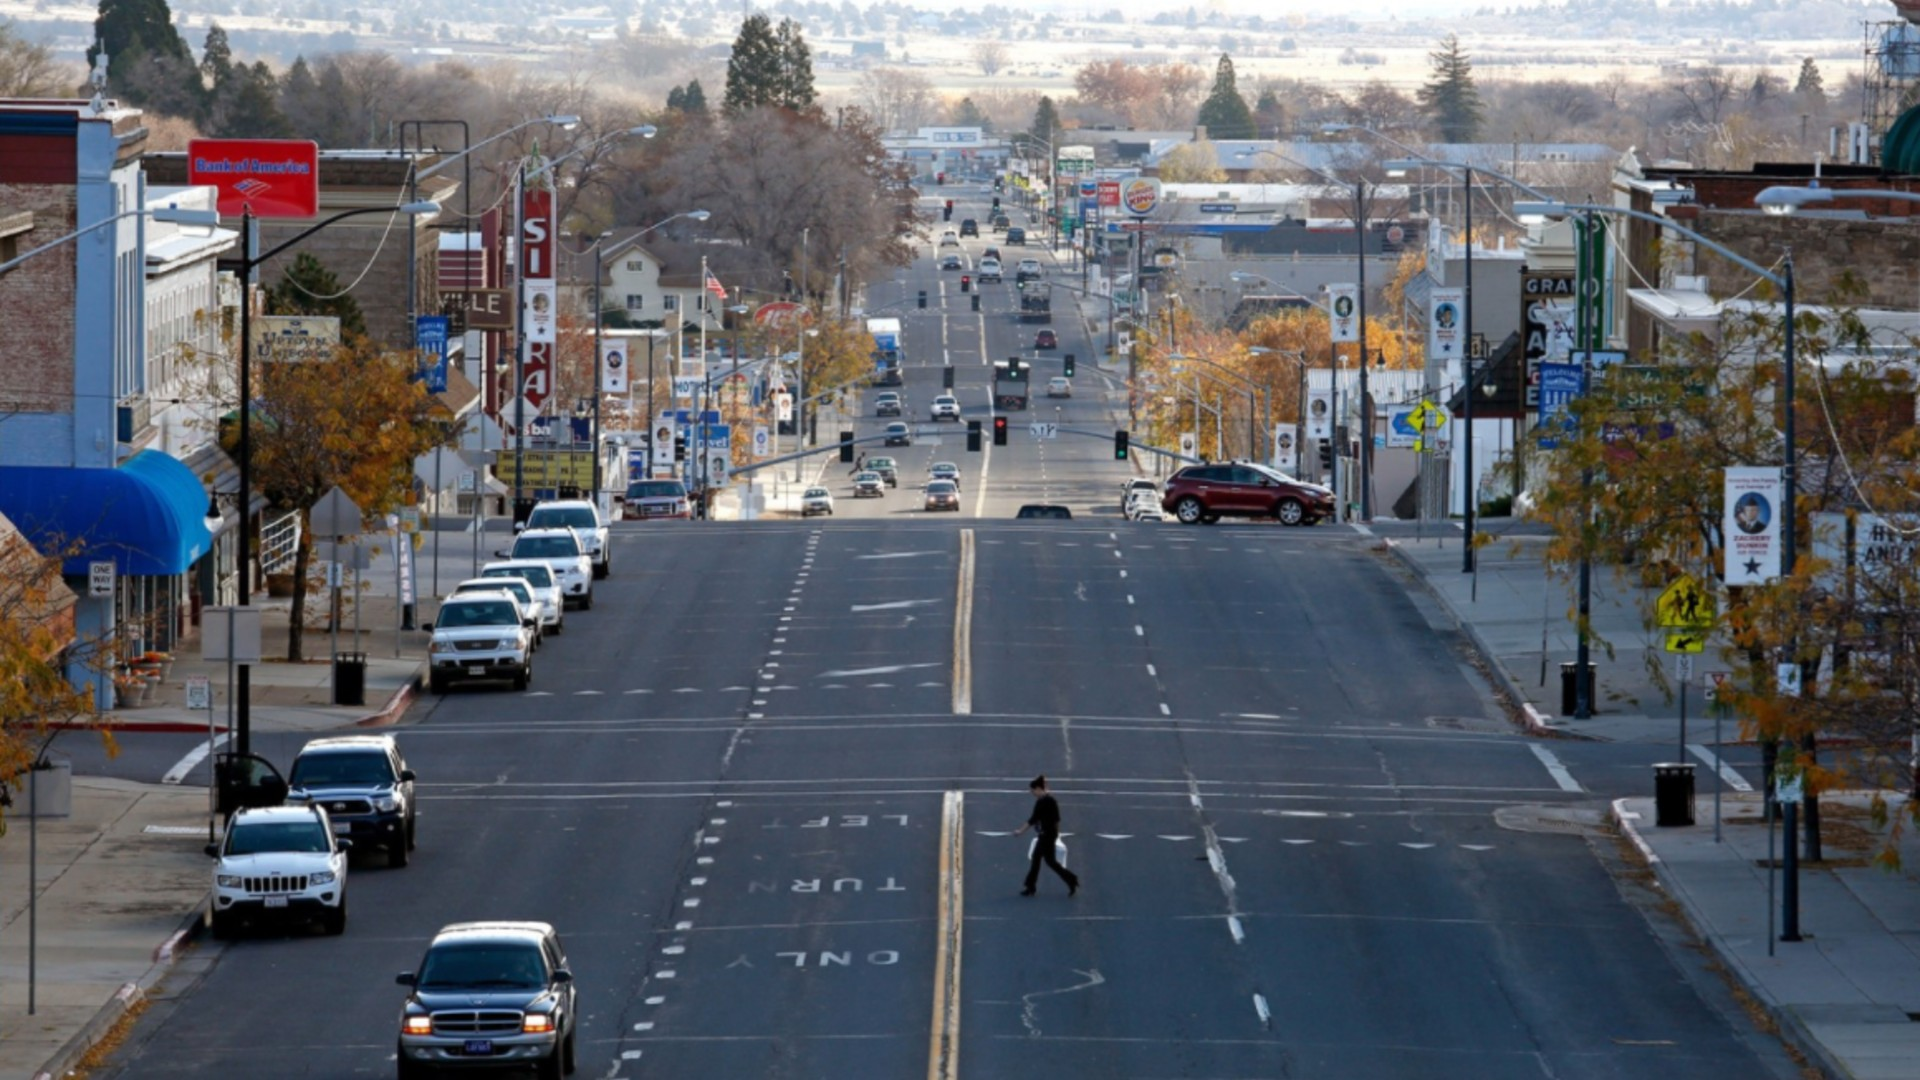 Main Street in Susanville, the seat of Lassen County, is seen in a file photo. (Gary Coronado / Los Angeles Times)